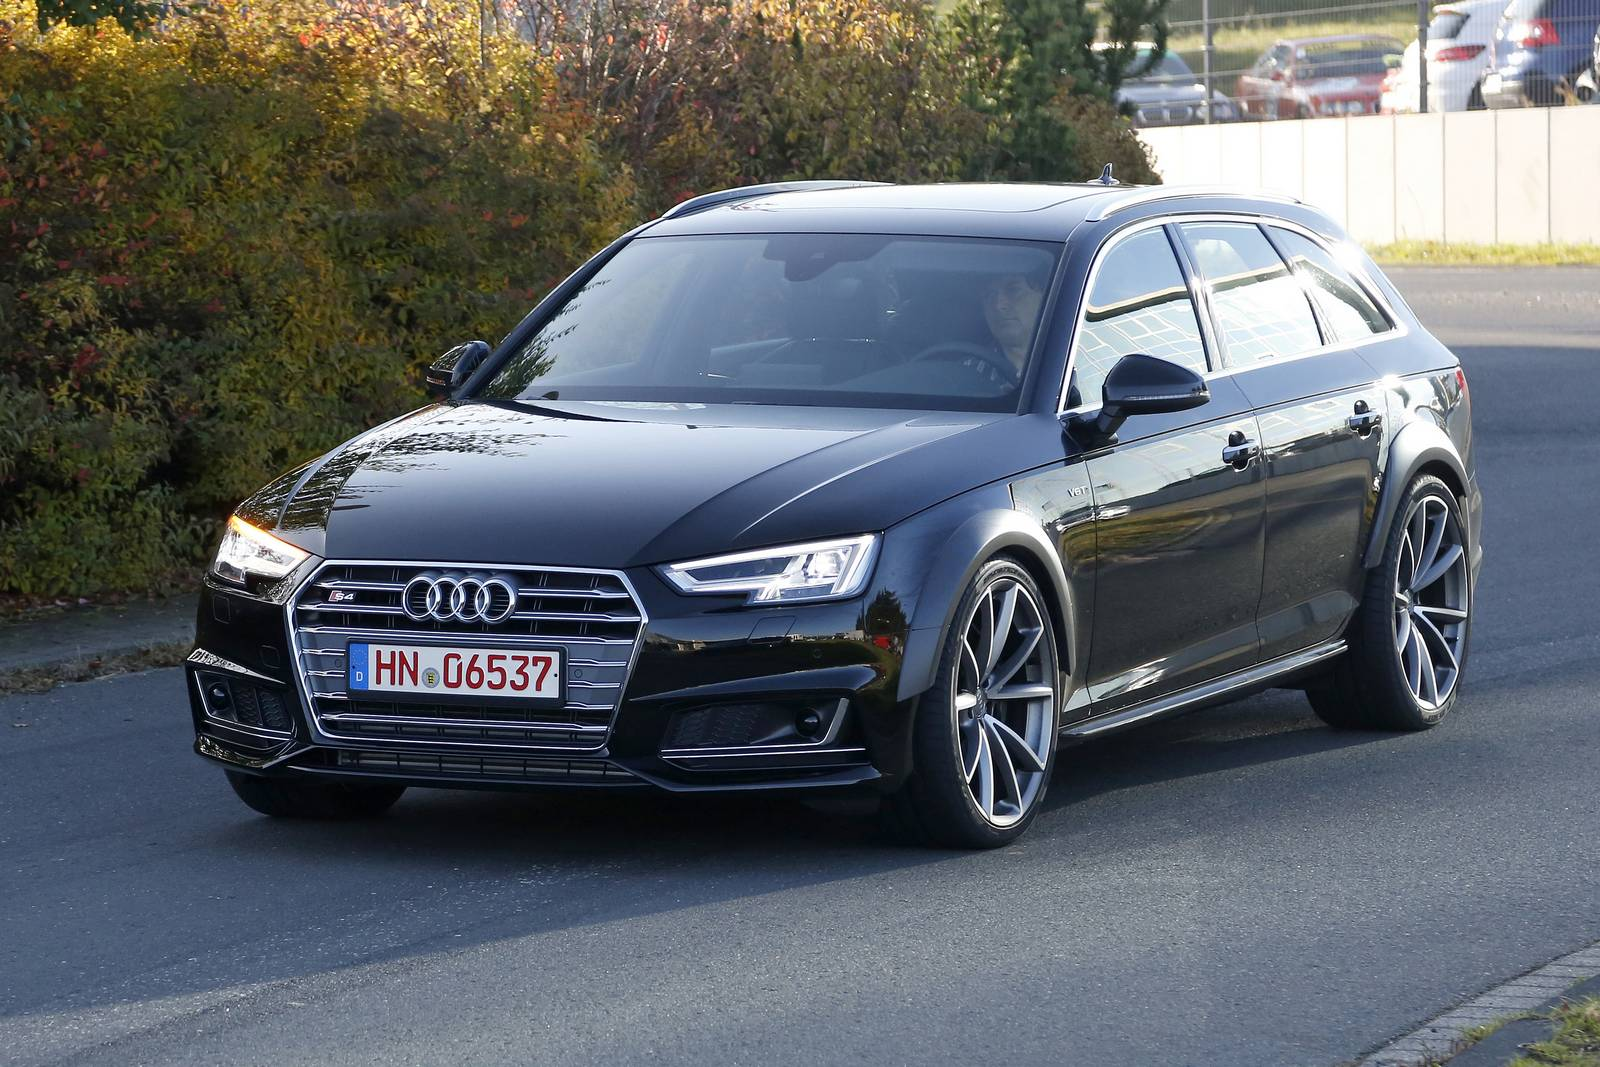 2018 Audi Rs4 Avant Test Mule Spy Shots Gtspirit